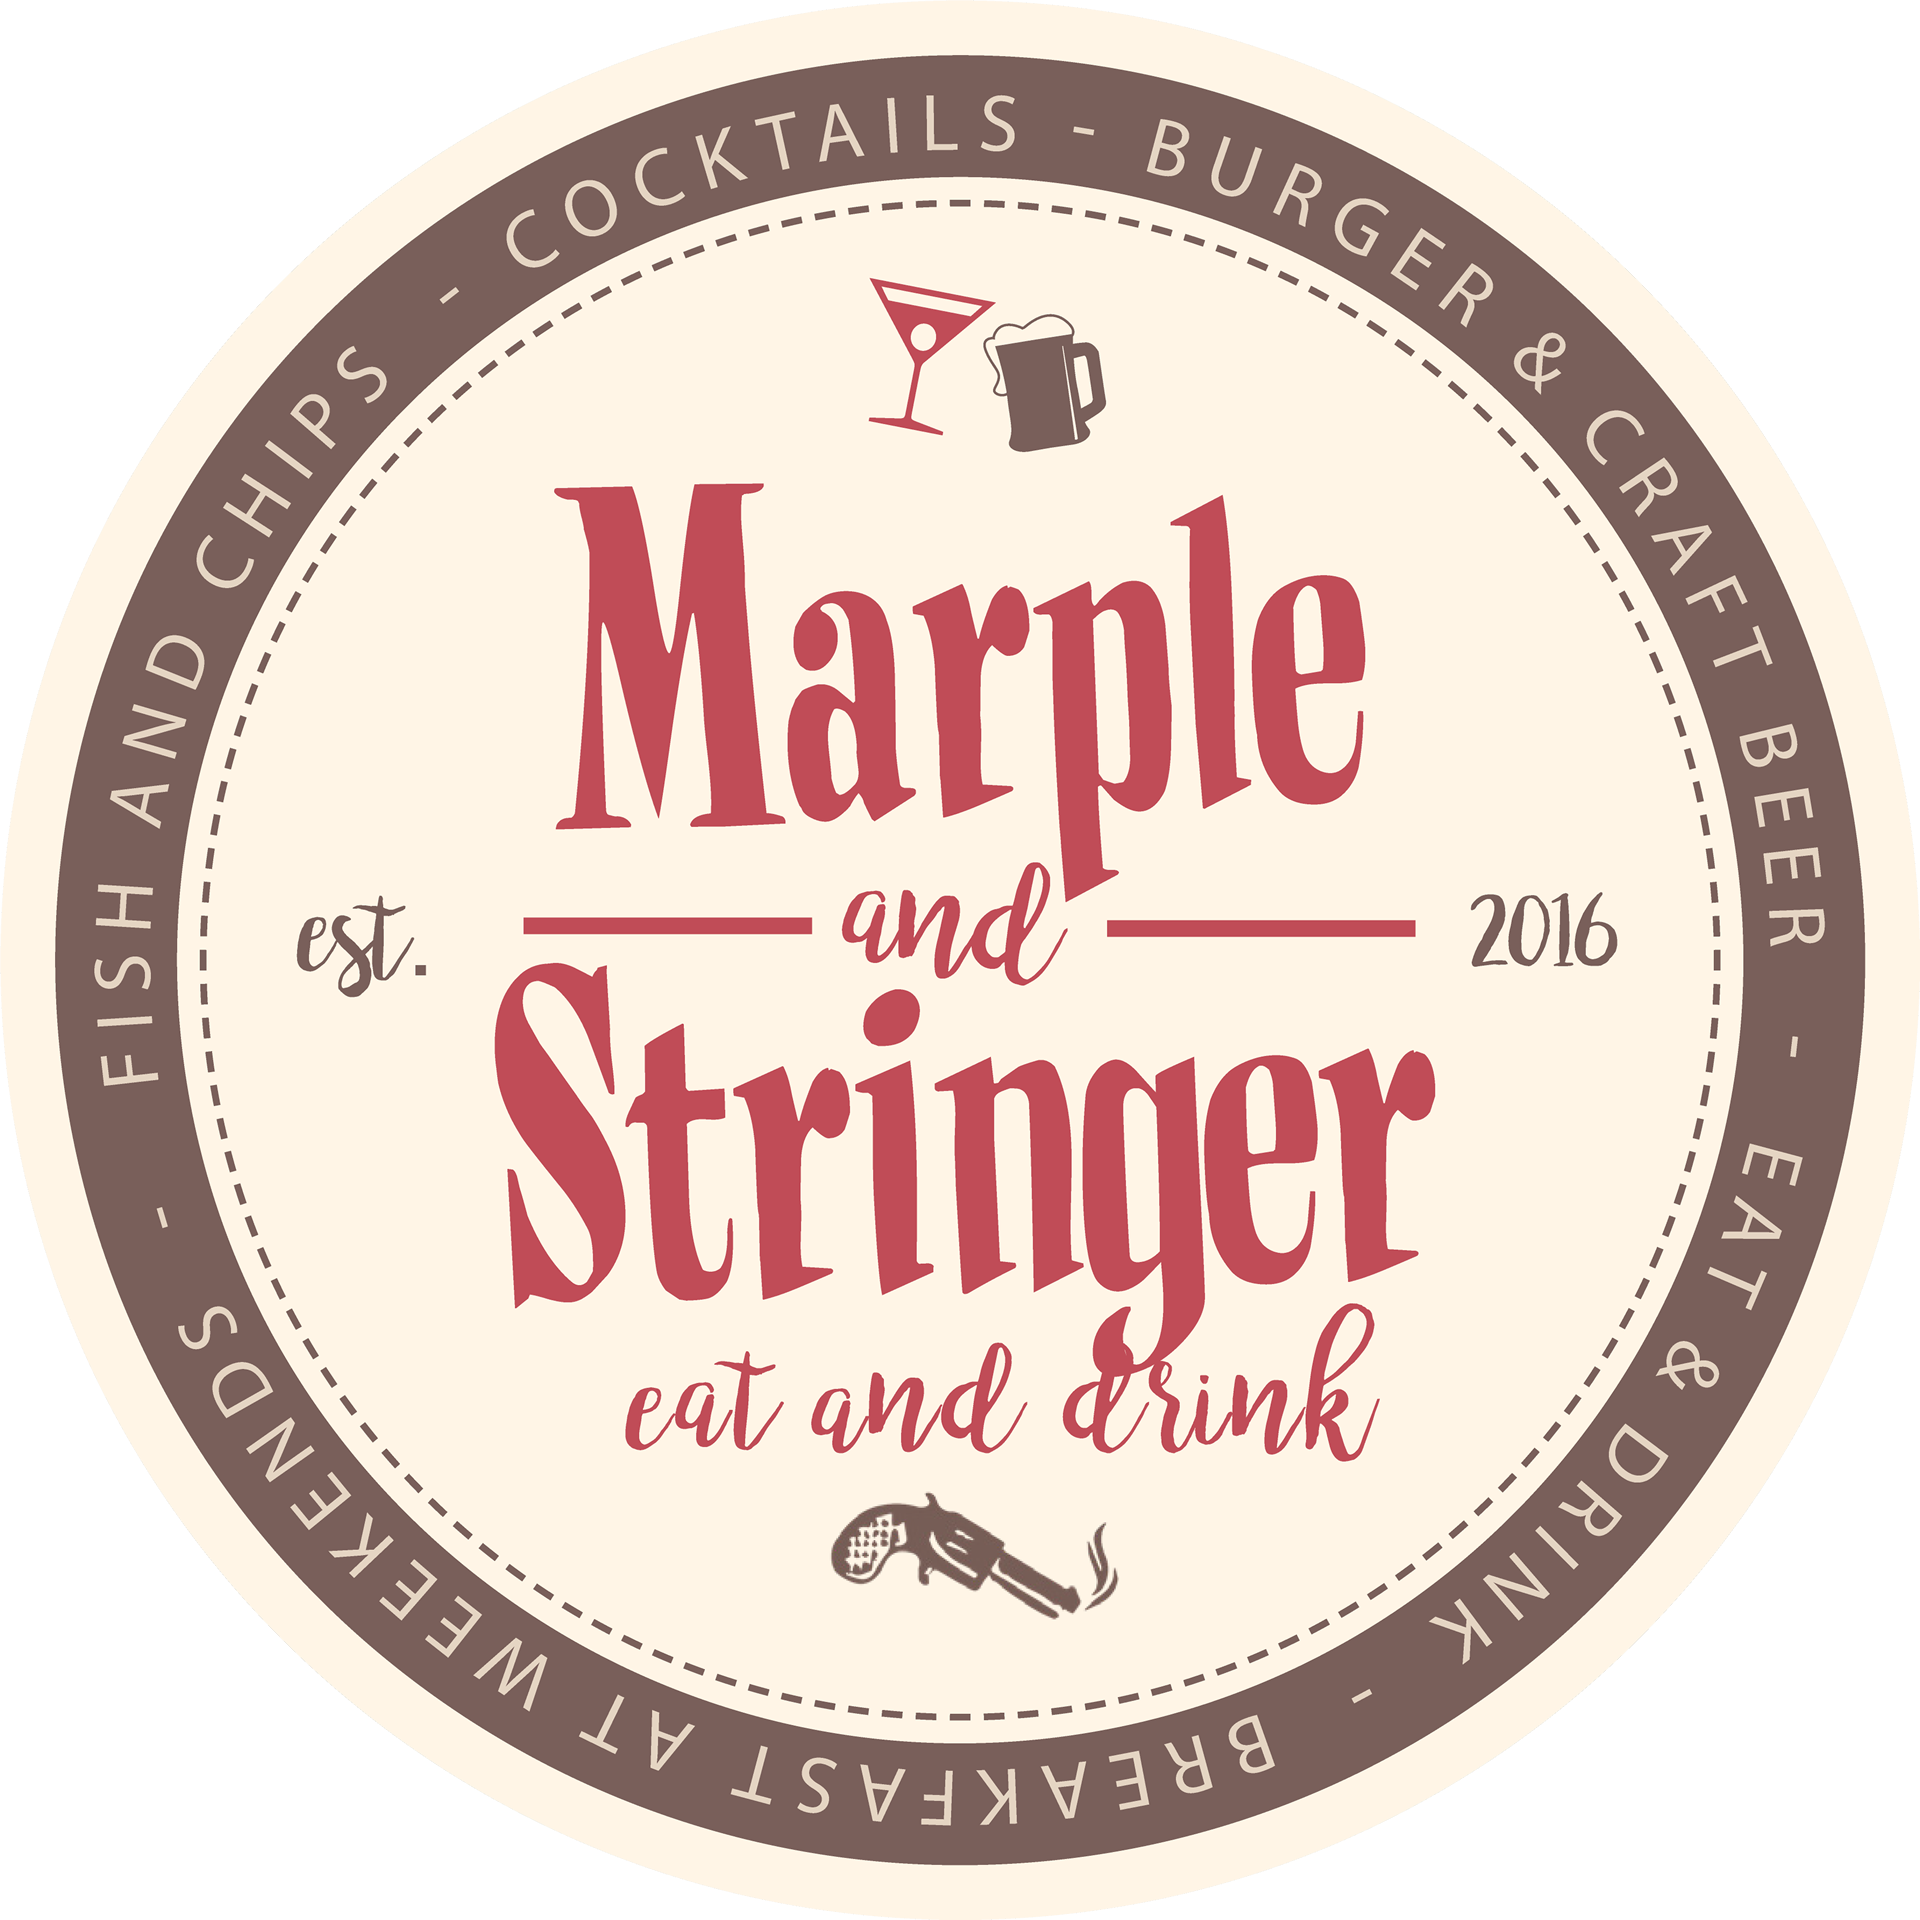 Logo Marple and Stringer - Burgerrestaurant & Bar